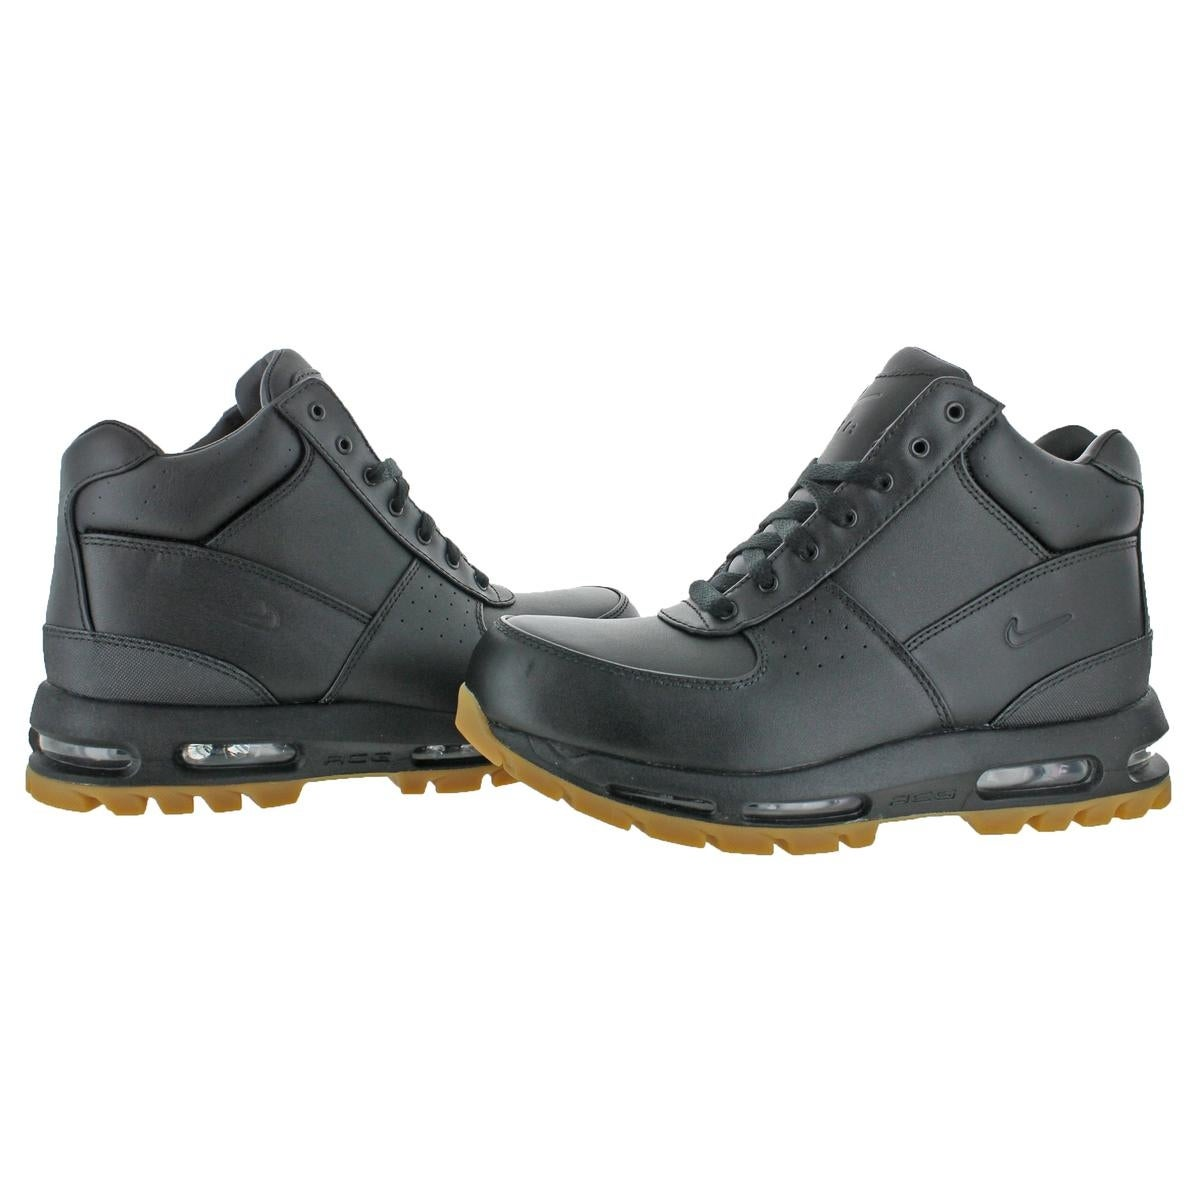 half off 2f461 8be43 Shop Nike Mens Air Max Goadome Ankle Boots Leather ACG - Free Shipping  Today - Overstock - 22119744